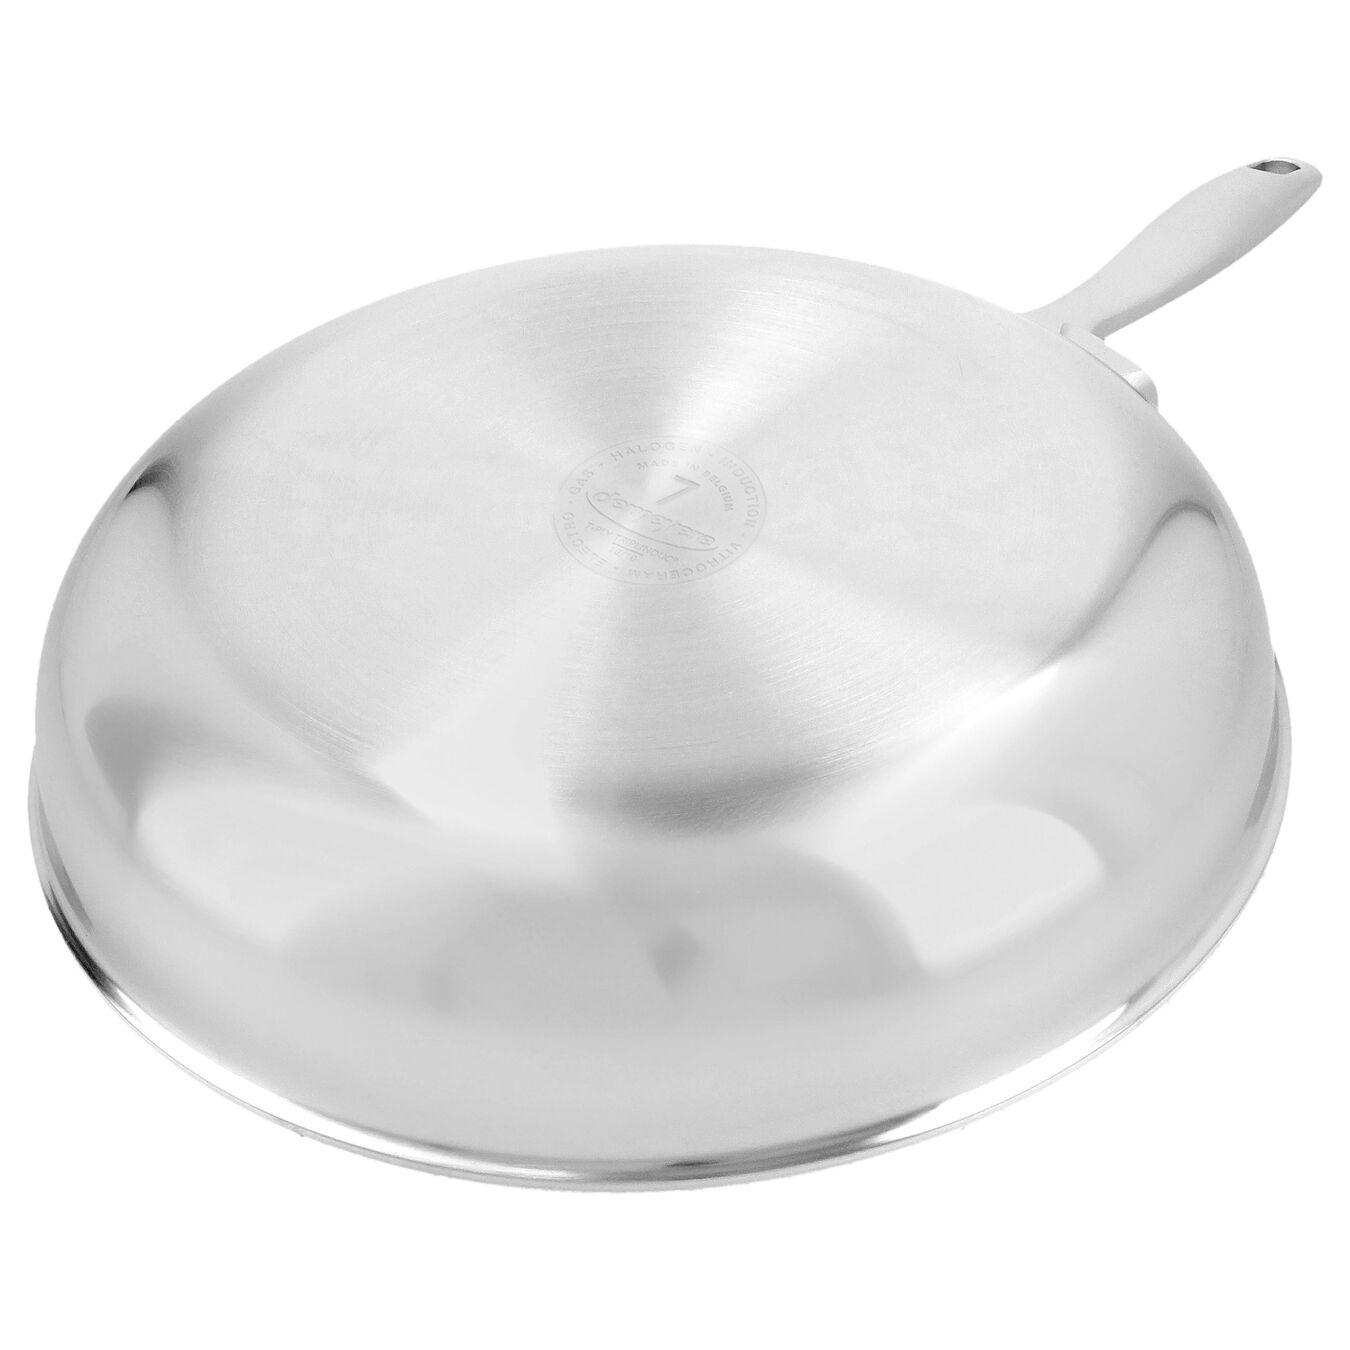 9.5-inch, 18/10 Stainless Steel, Non-stick, Ceramic, Frying pan,,large 3